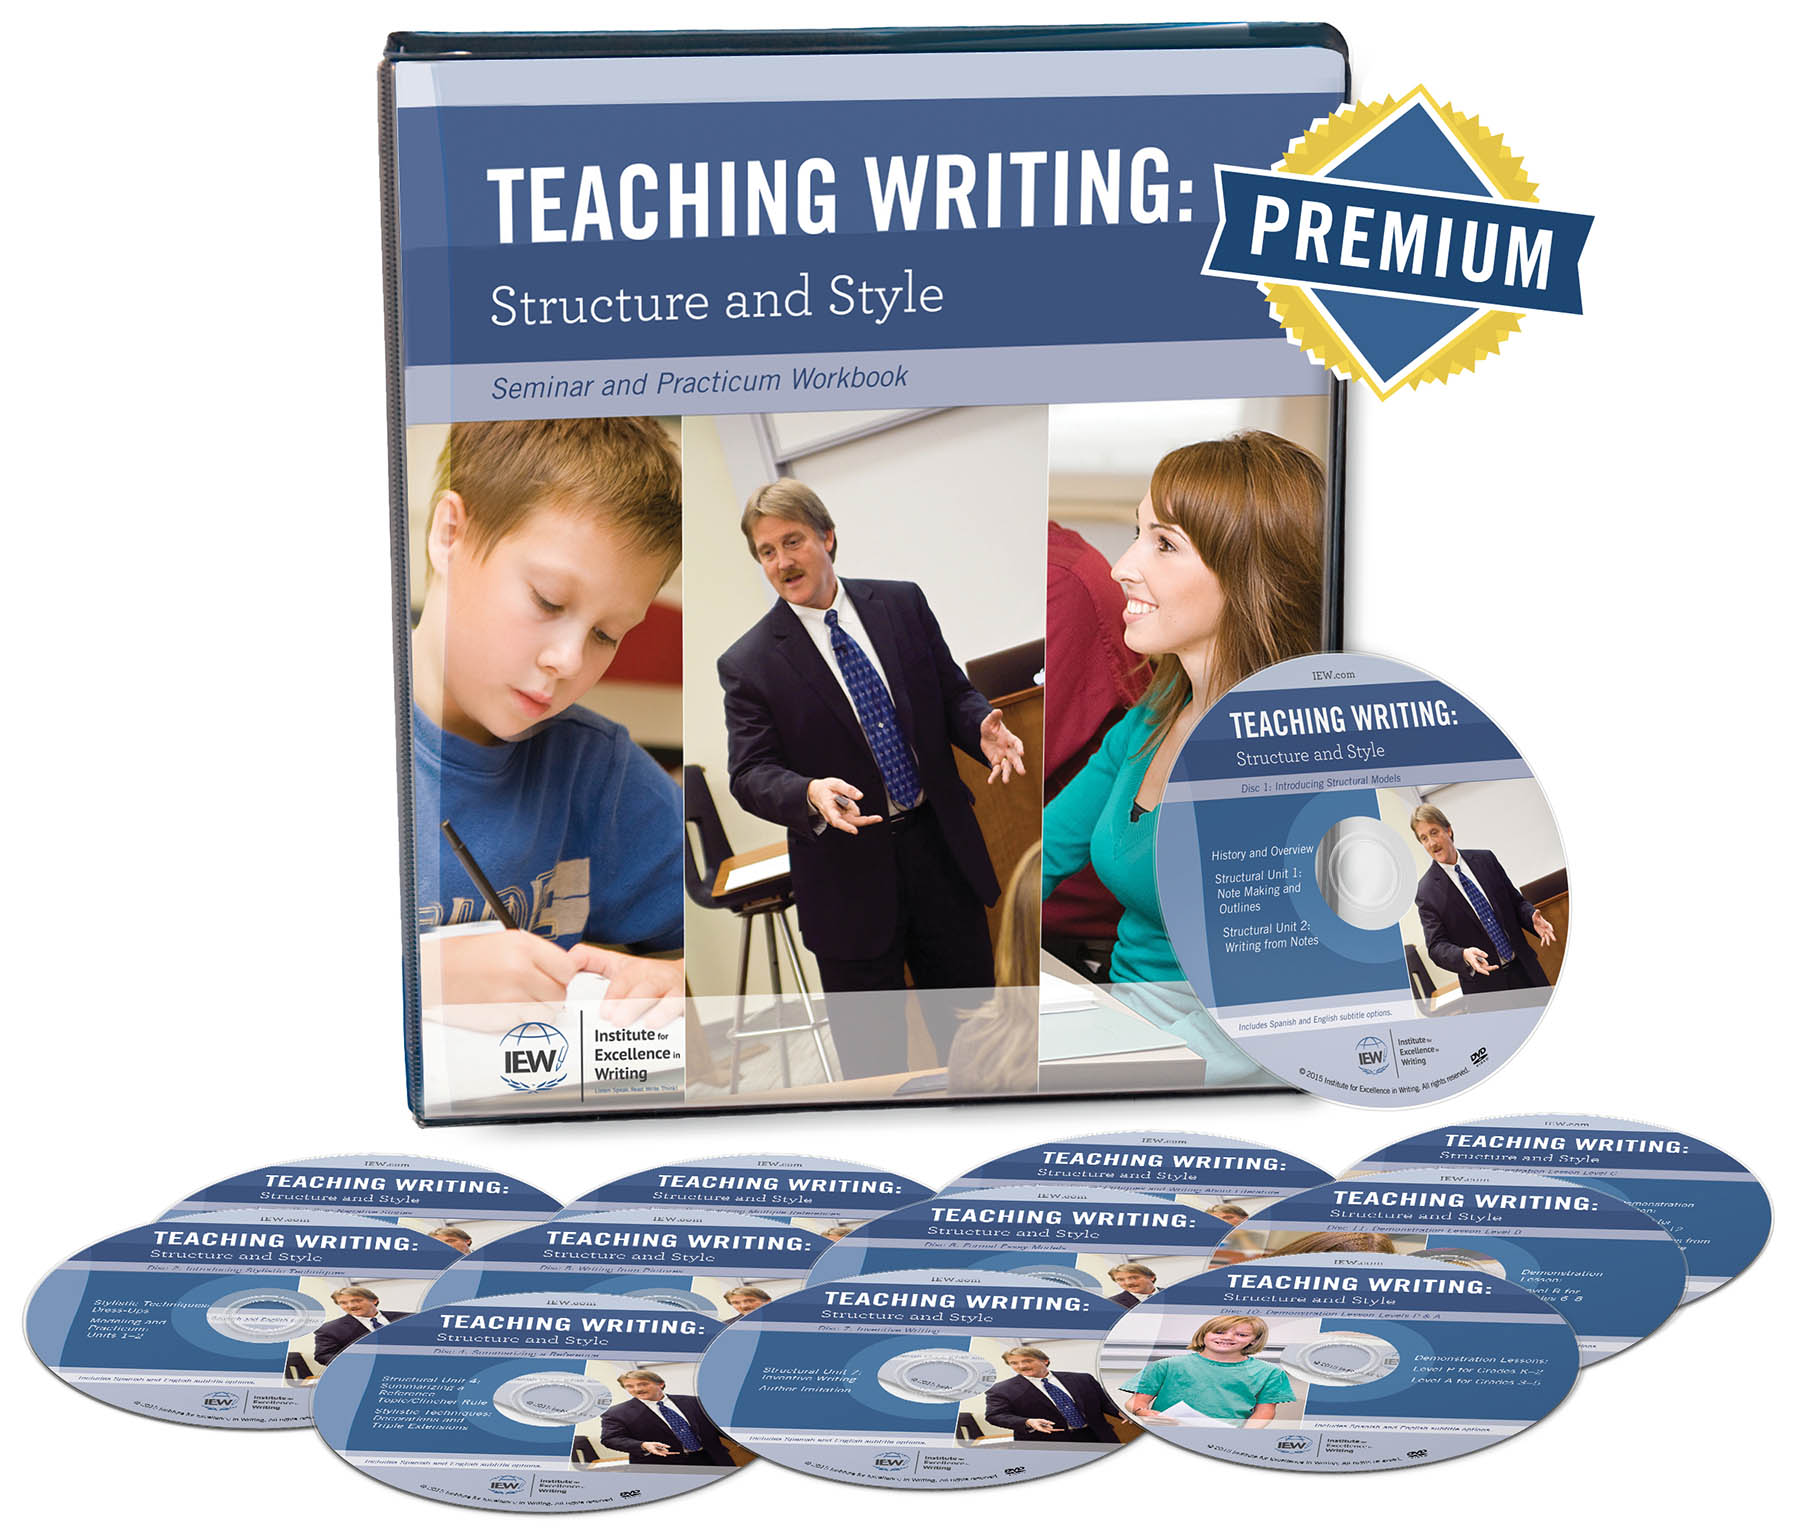 Labor Day Super Deal - You receive $61 BONUS/FREE items when you get IEW Teaching Writing Structure & Style from HowToHomeschoolMyChild.com